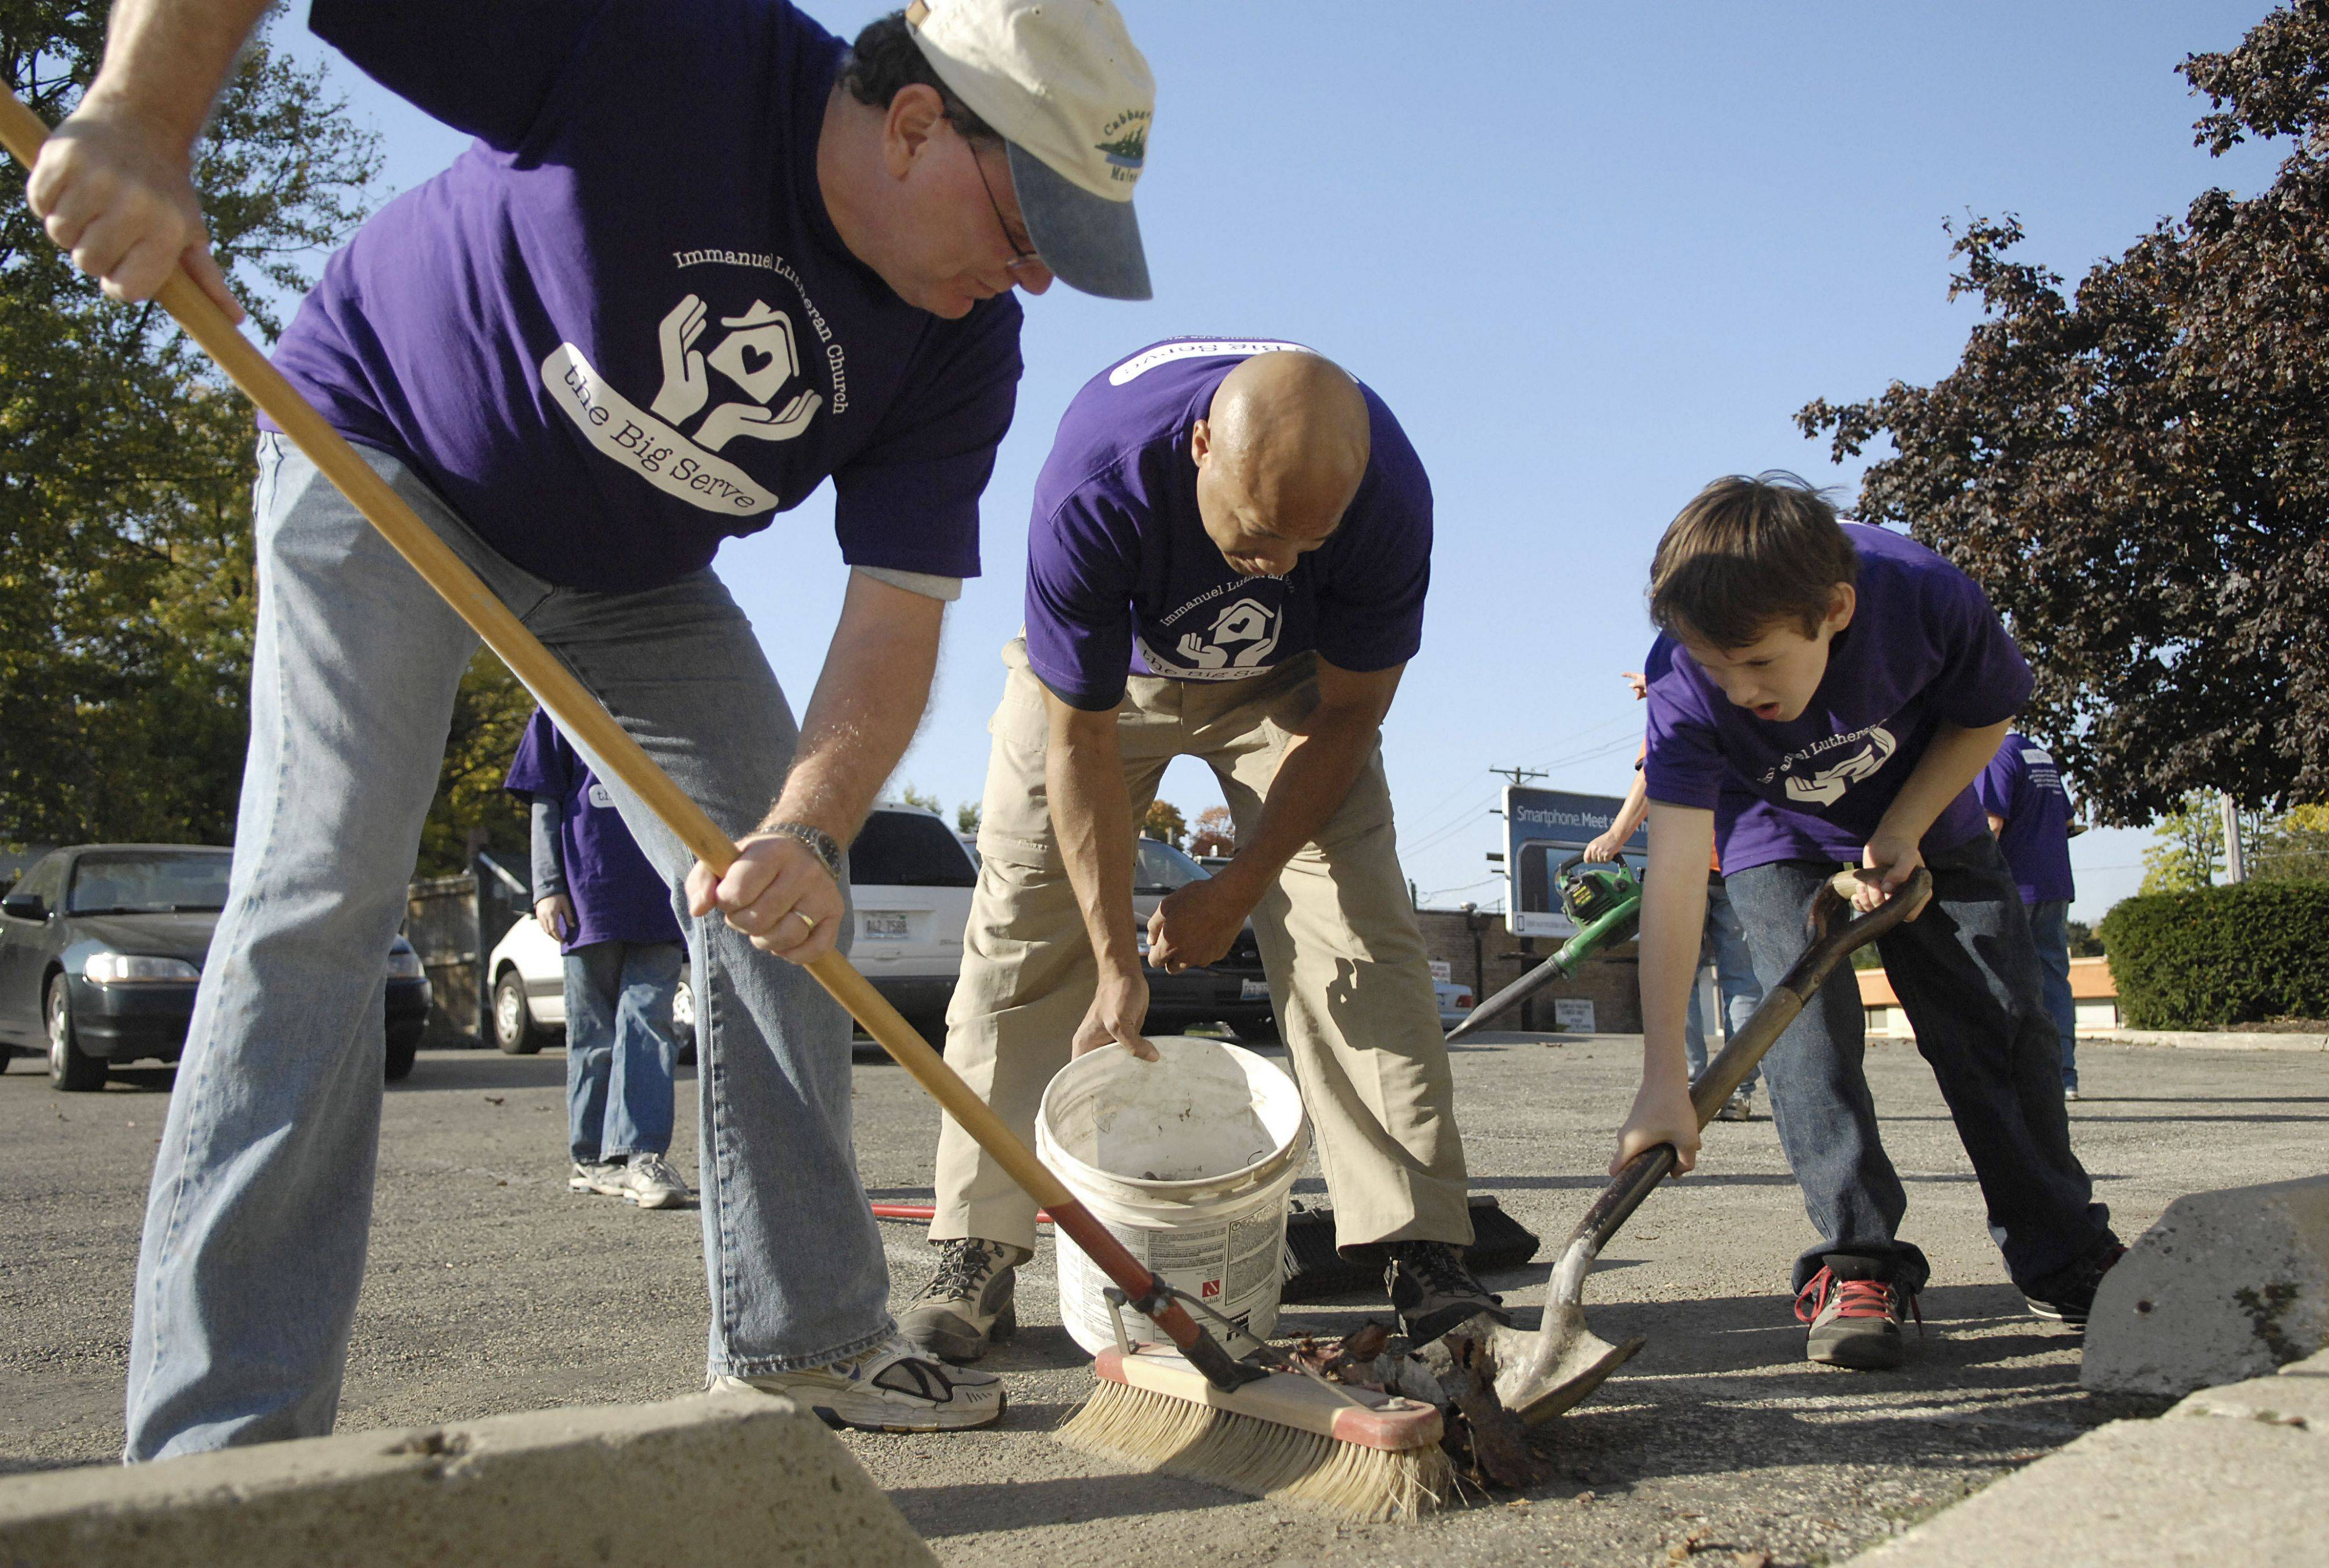 Joe Smedinghoff of West Dundee, Melvin Faulkner of Huntley and Austin Minella, 11, of Carpentersville use teamwork to sweep up debris from the parking lot of the Life Choices Pregnancy Center in Elgin. The men, from Immanuel Lutheran Church in East Dundee, were a part of dozens of volunteers who were spread throughout Elgin and neighboring towns during the congregation's The Big Serve day on Saturday, October 9.